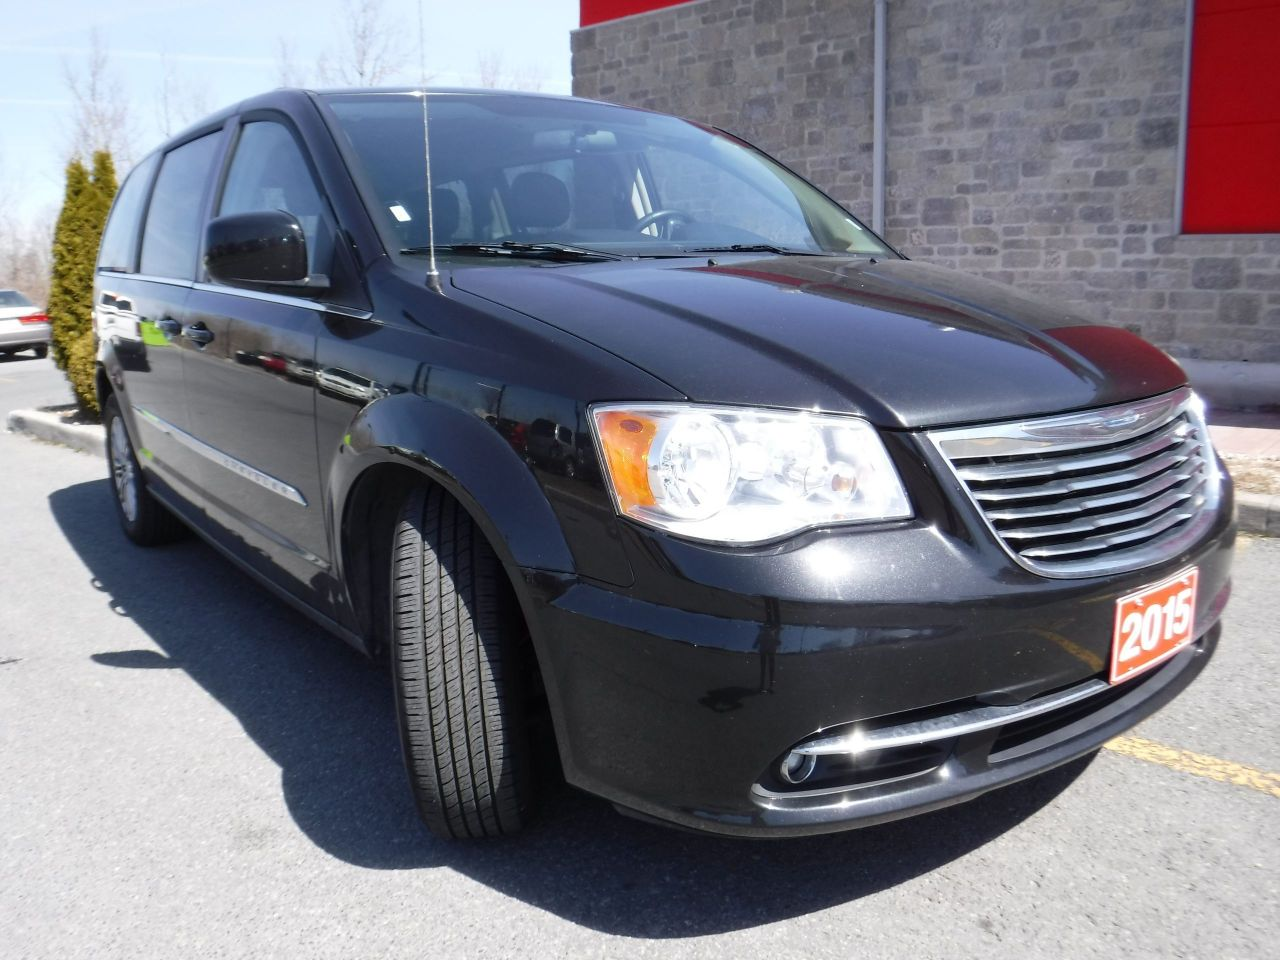 Details Stephen Fitzgerald Motors 2015 Chrysler Town And Country